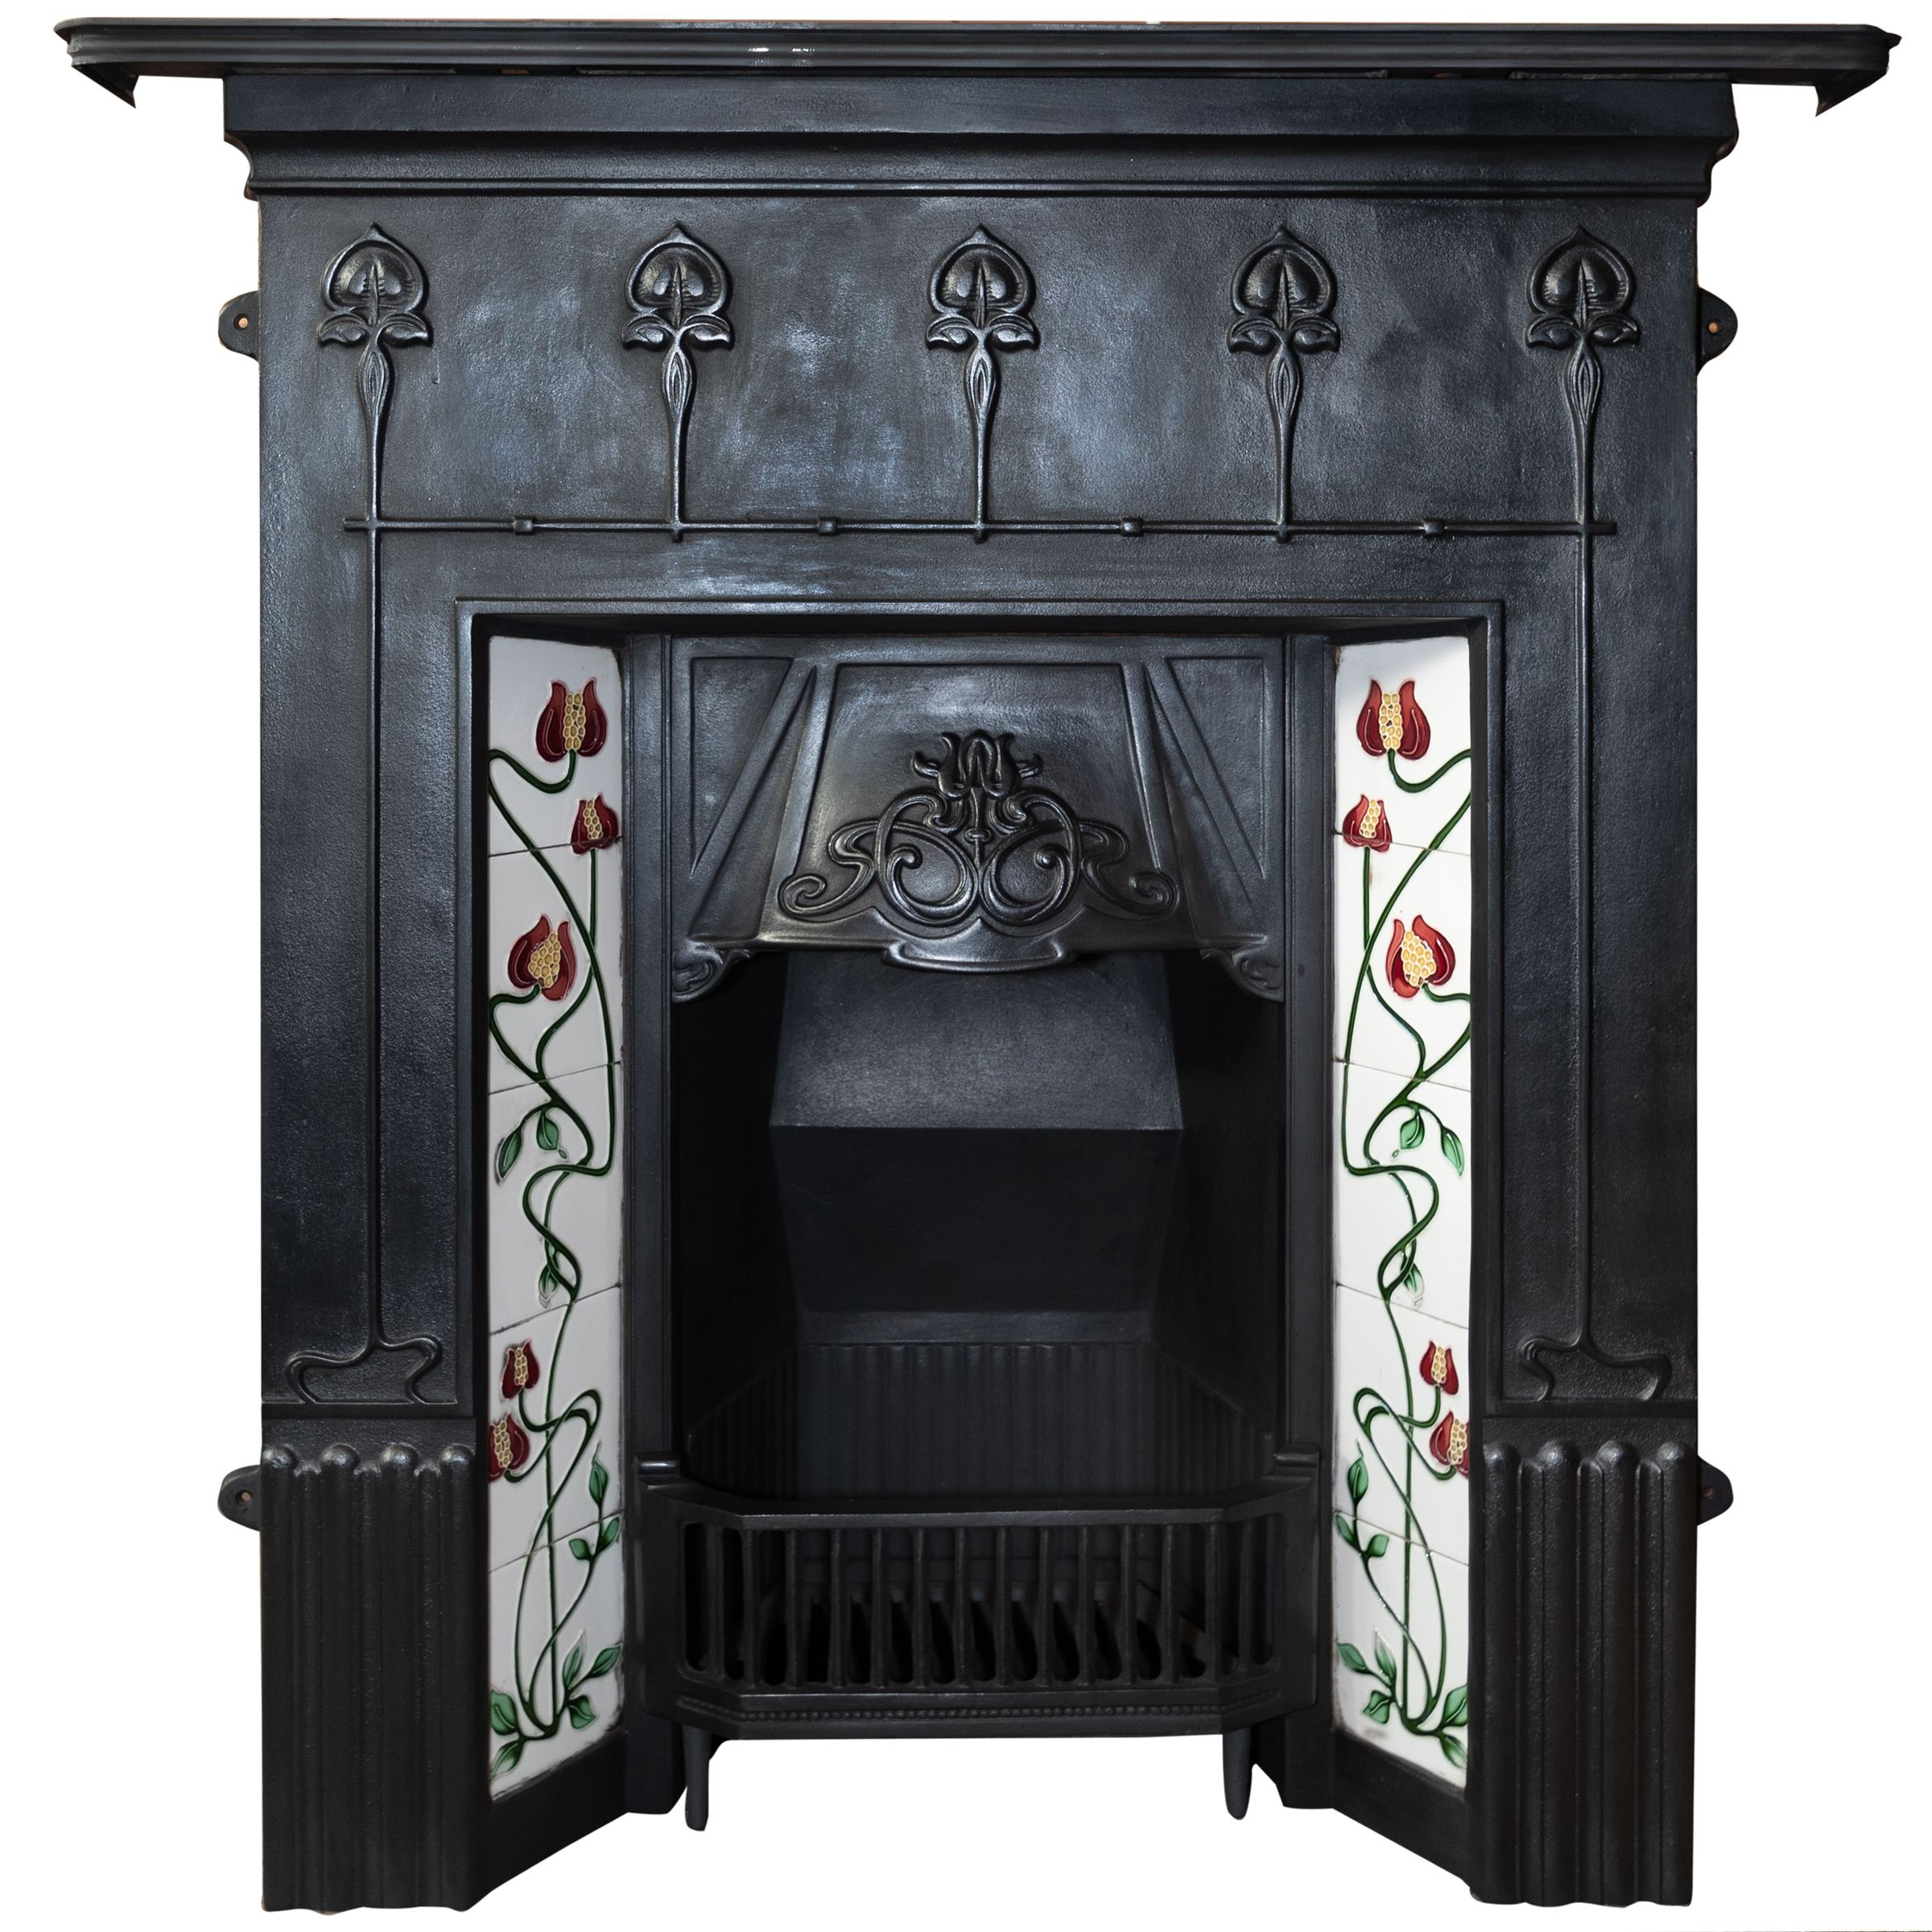 Victorian Fireplace Shop Elegant Huge Selection Of Antique Cast Iron Fireplaces Fully